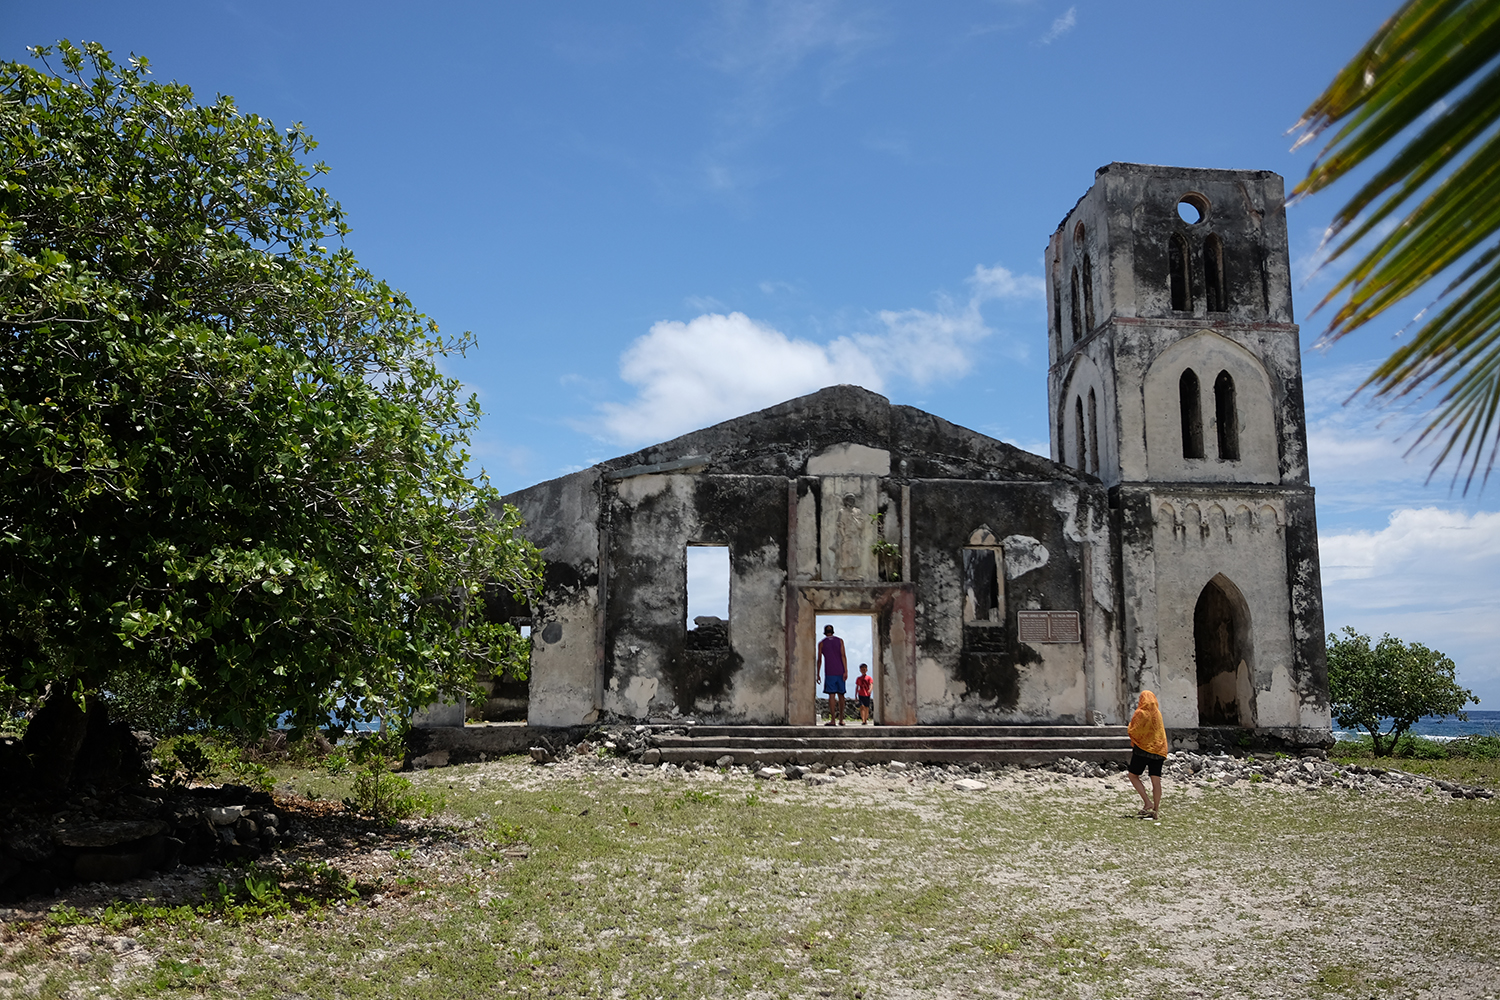 The church destroyed by the massive waves of Cyclone Ofa in 1990. With the village completely destroyed, the villagers swam to Falealupo Primary school to the north. The church remains a monument to the people of Falealupo.